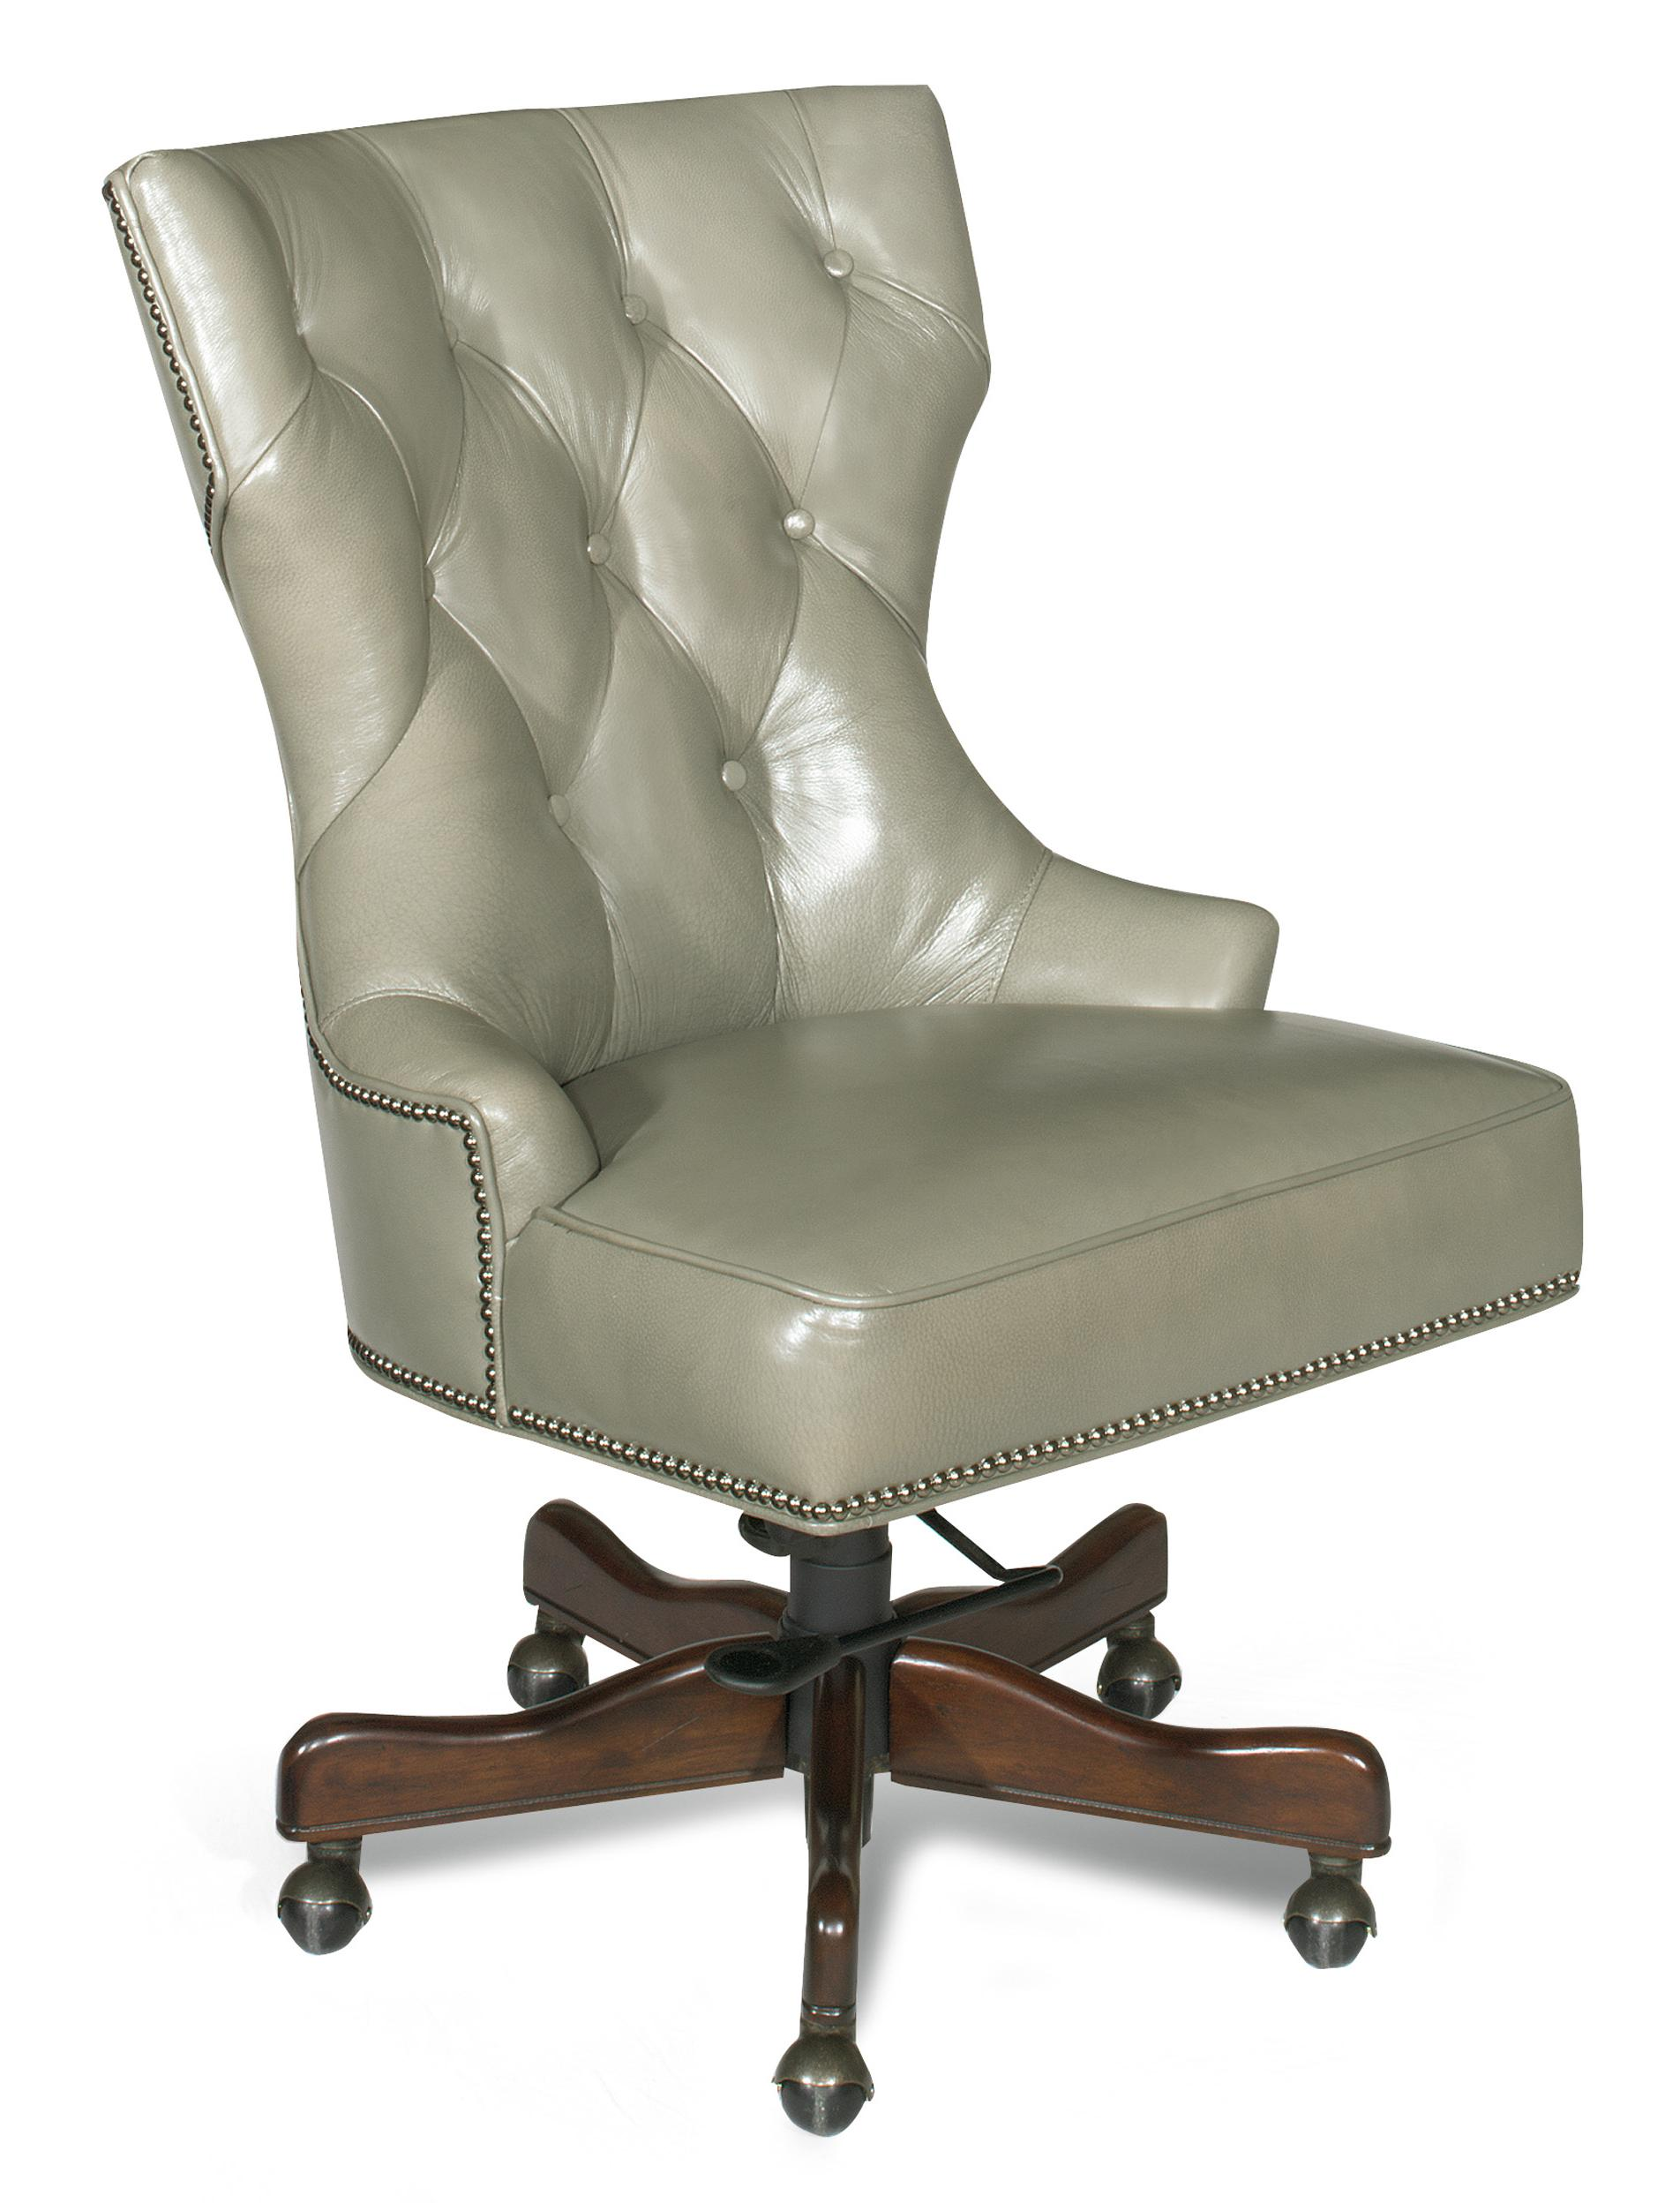 Executive Seating Executive Chair by Hooker Furniture at Baer's Furniture